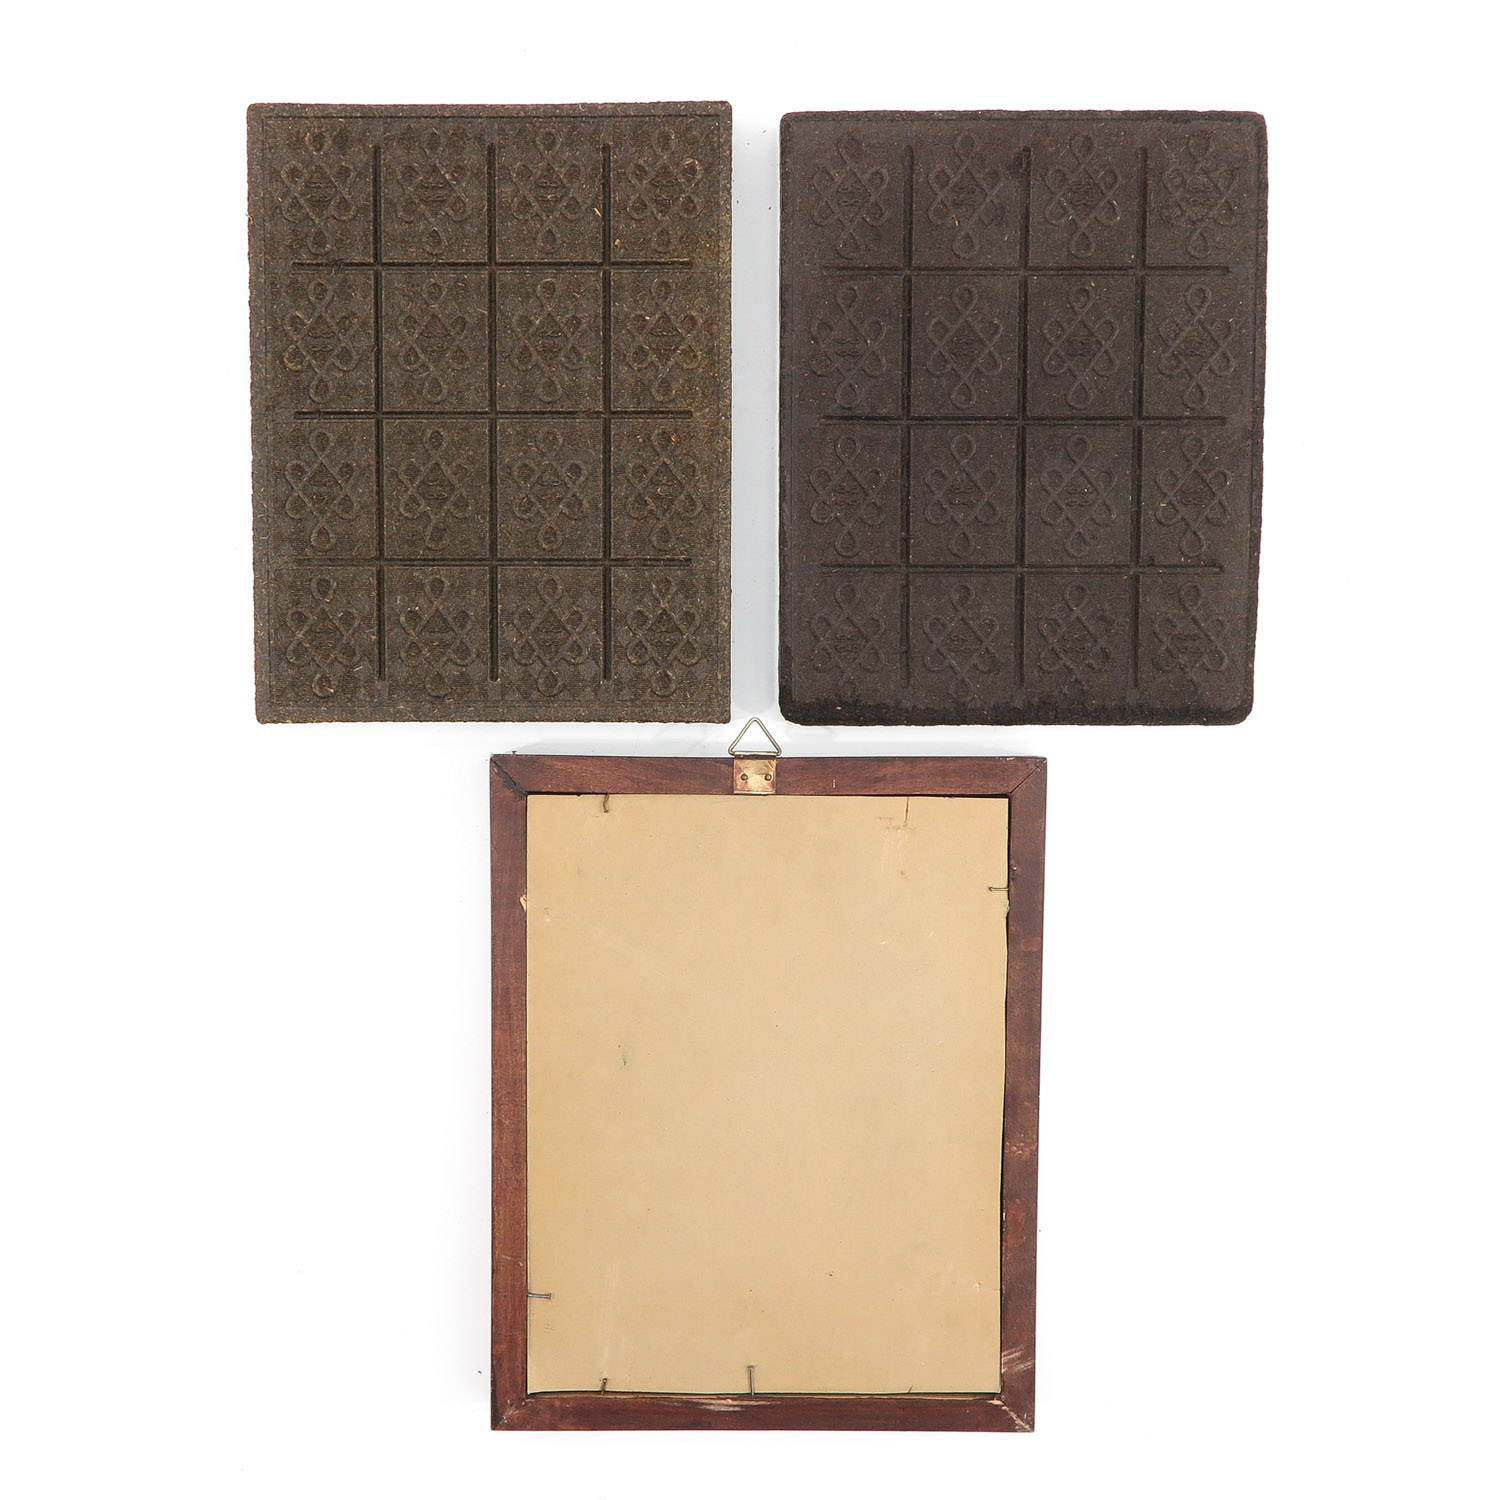 A Collection of 3 Tea Tiles - Image 2 of 10